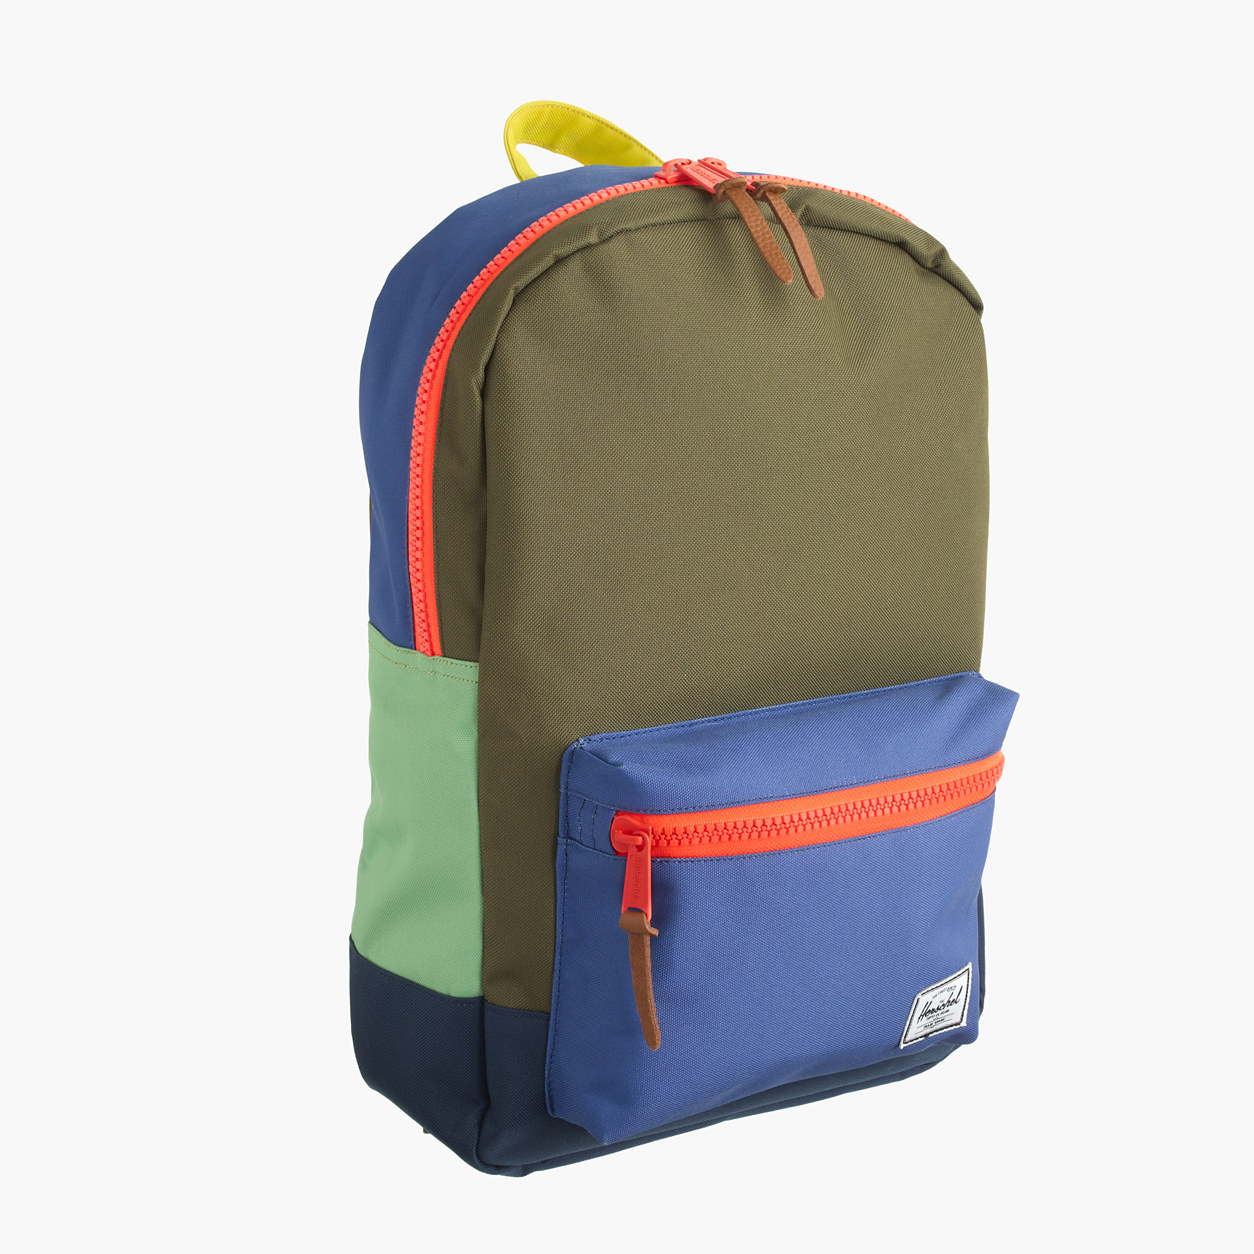 Kids Backpacks Canada - Top Reviewed Backpacks